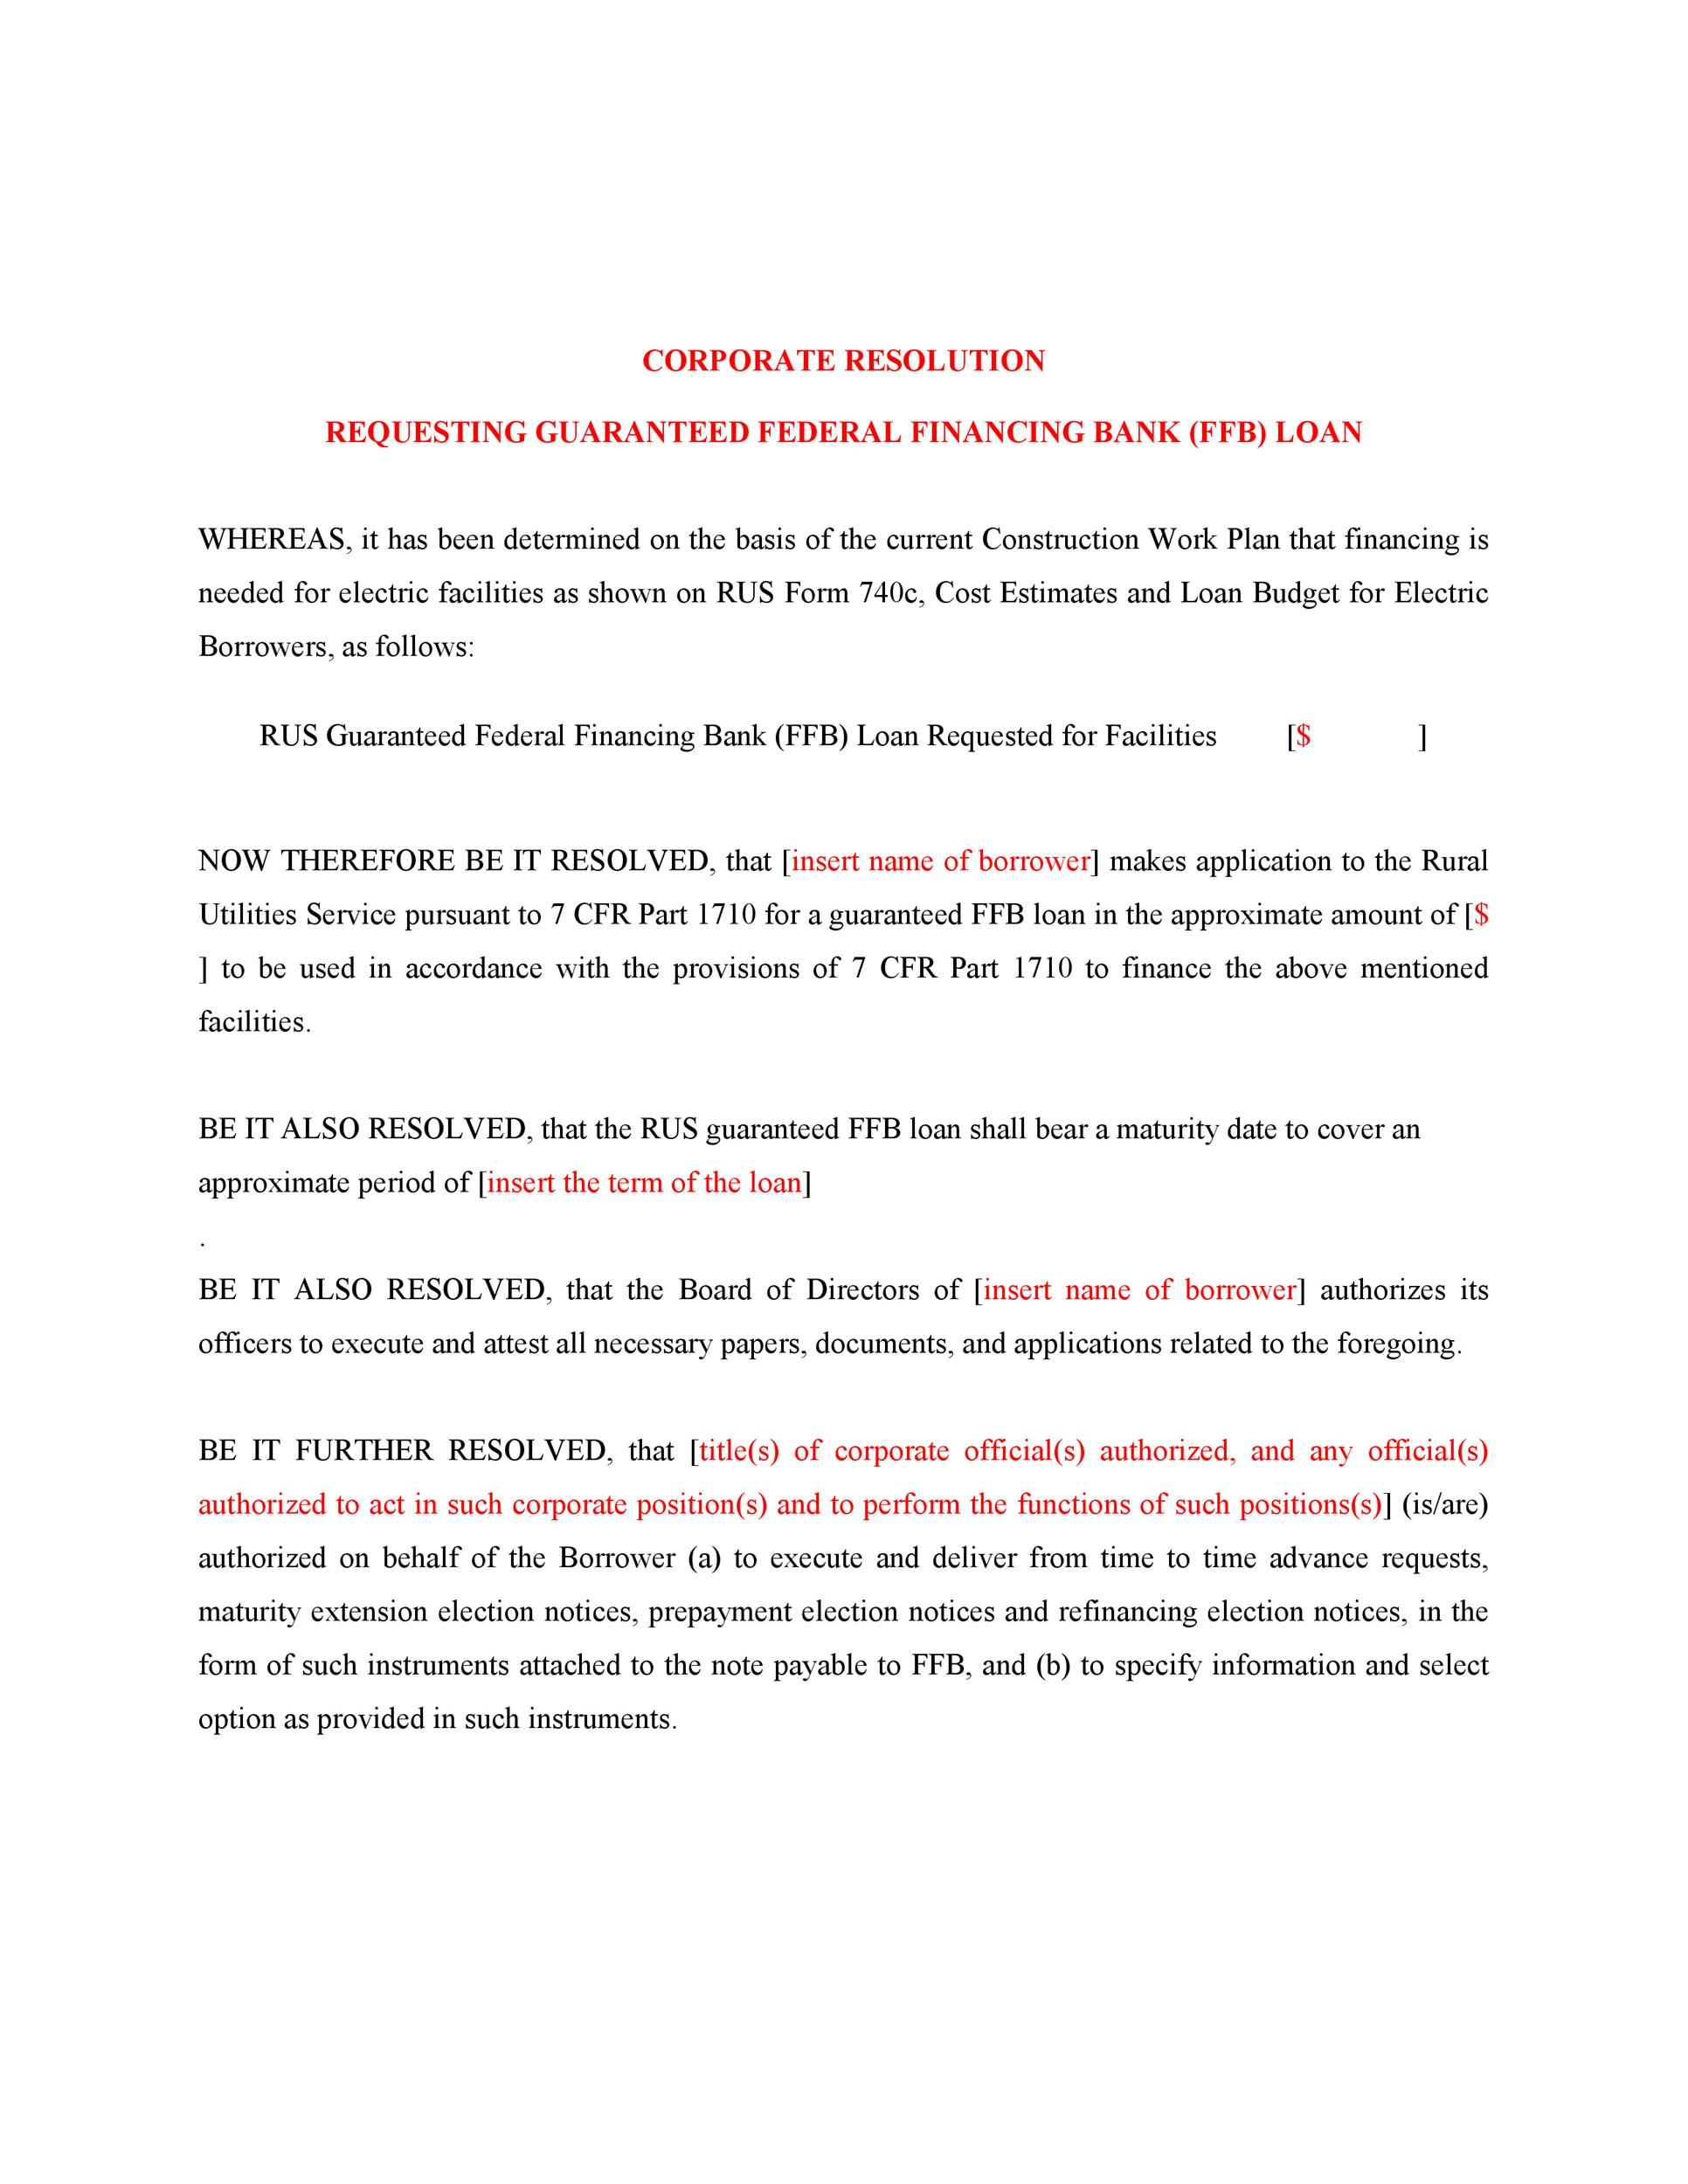 Free Corporate Resolution Form 29